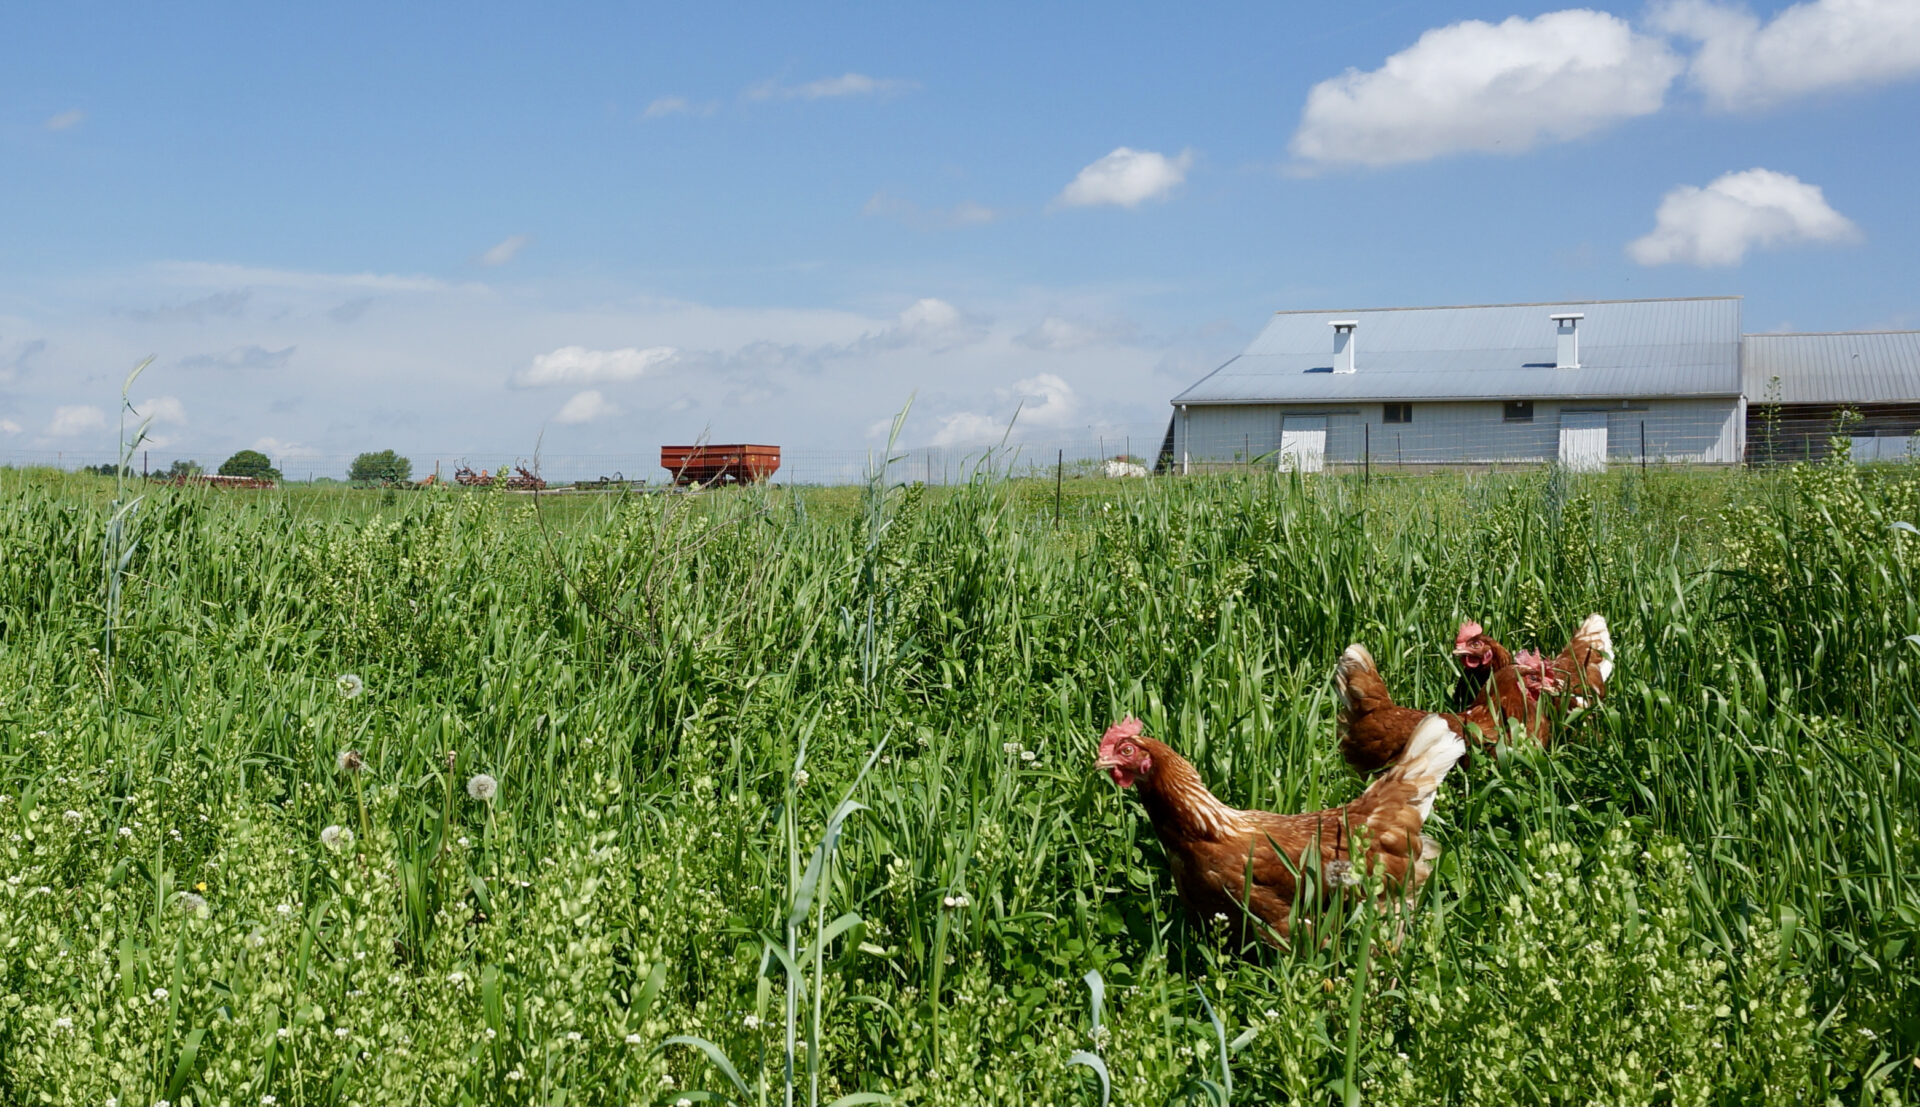 Pastured hens in a farm field